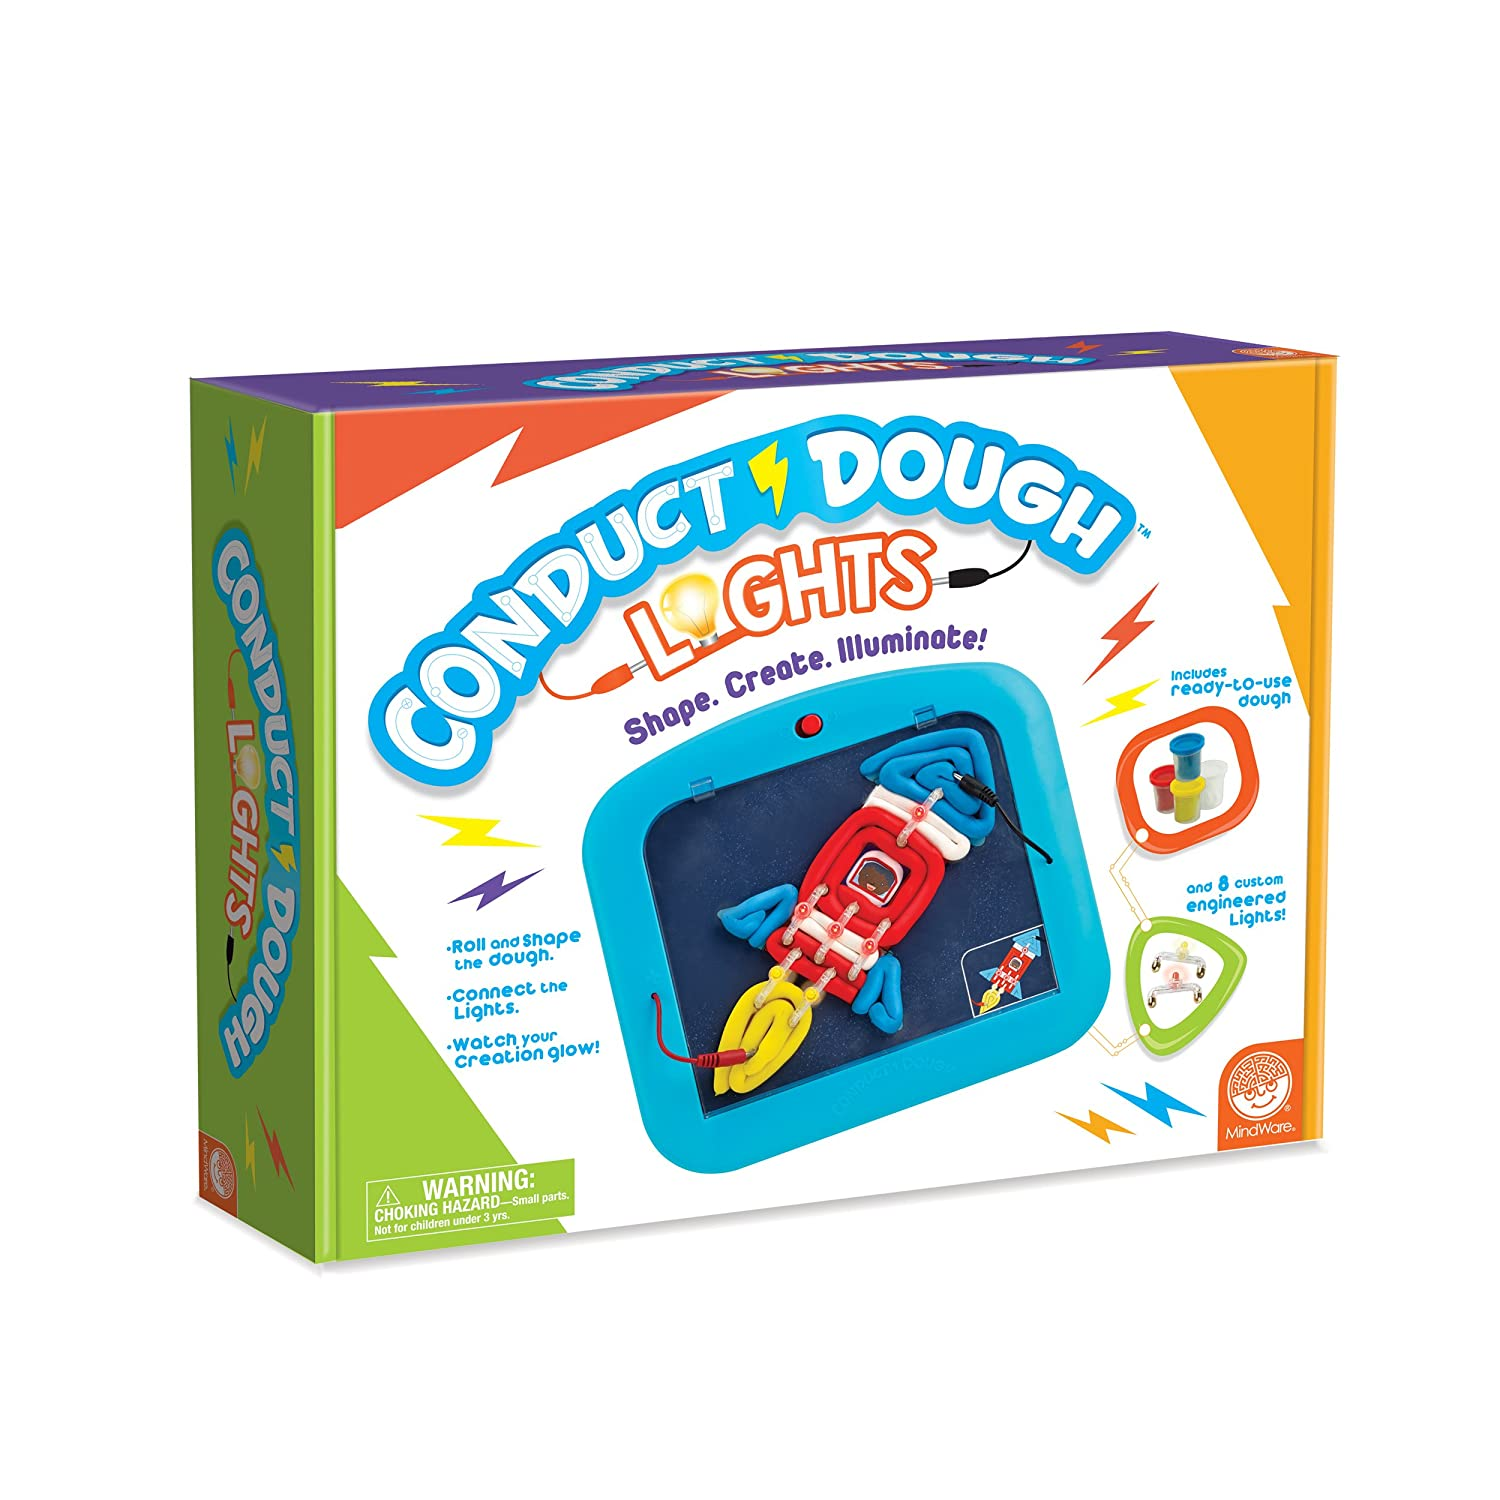 Mindware Conduct Dough Lights Toys Games Squishy Circuits Kit